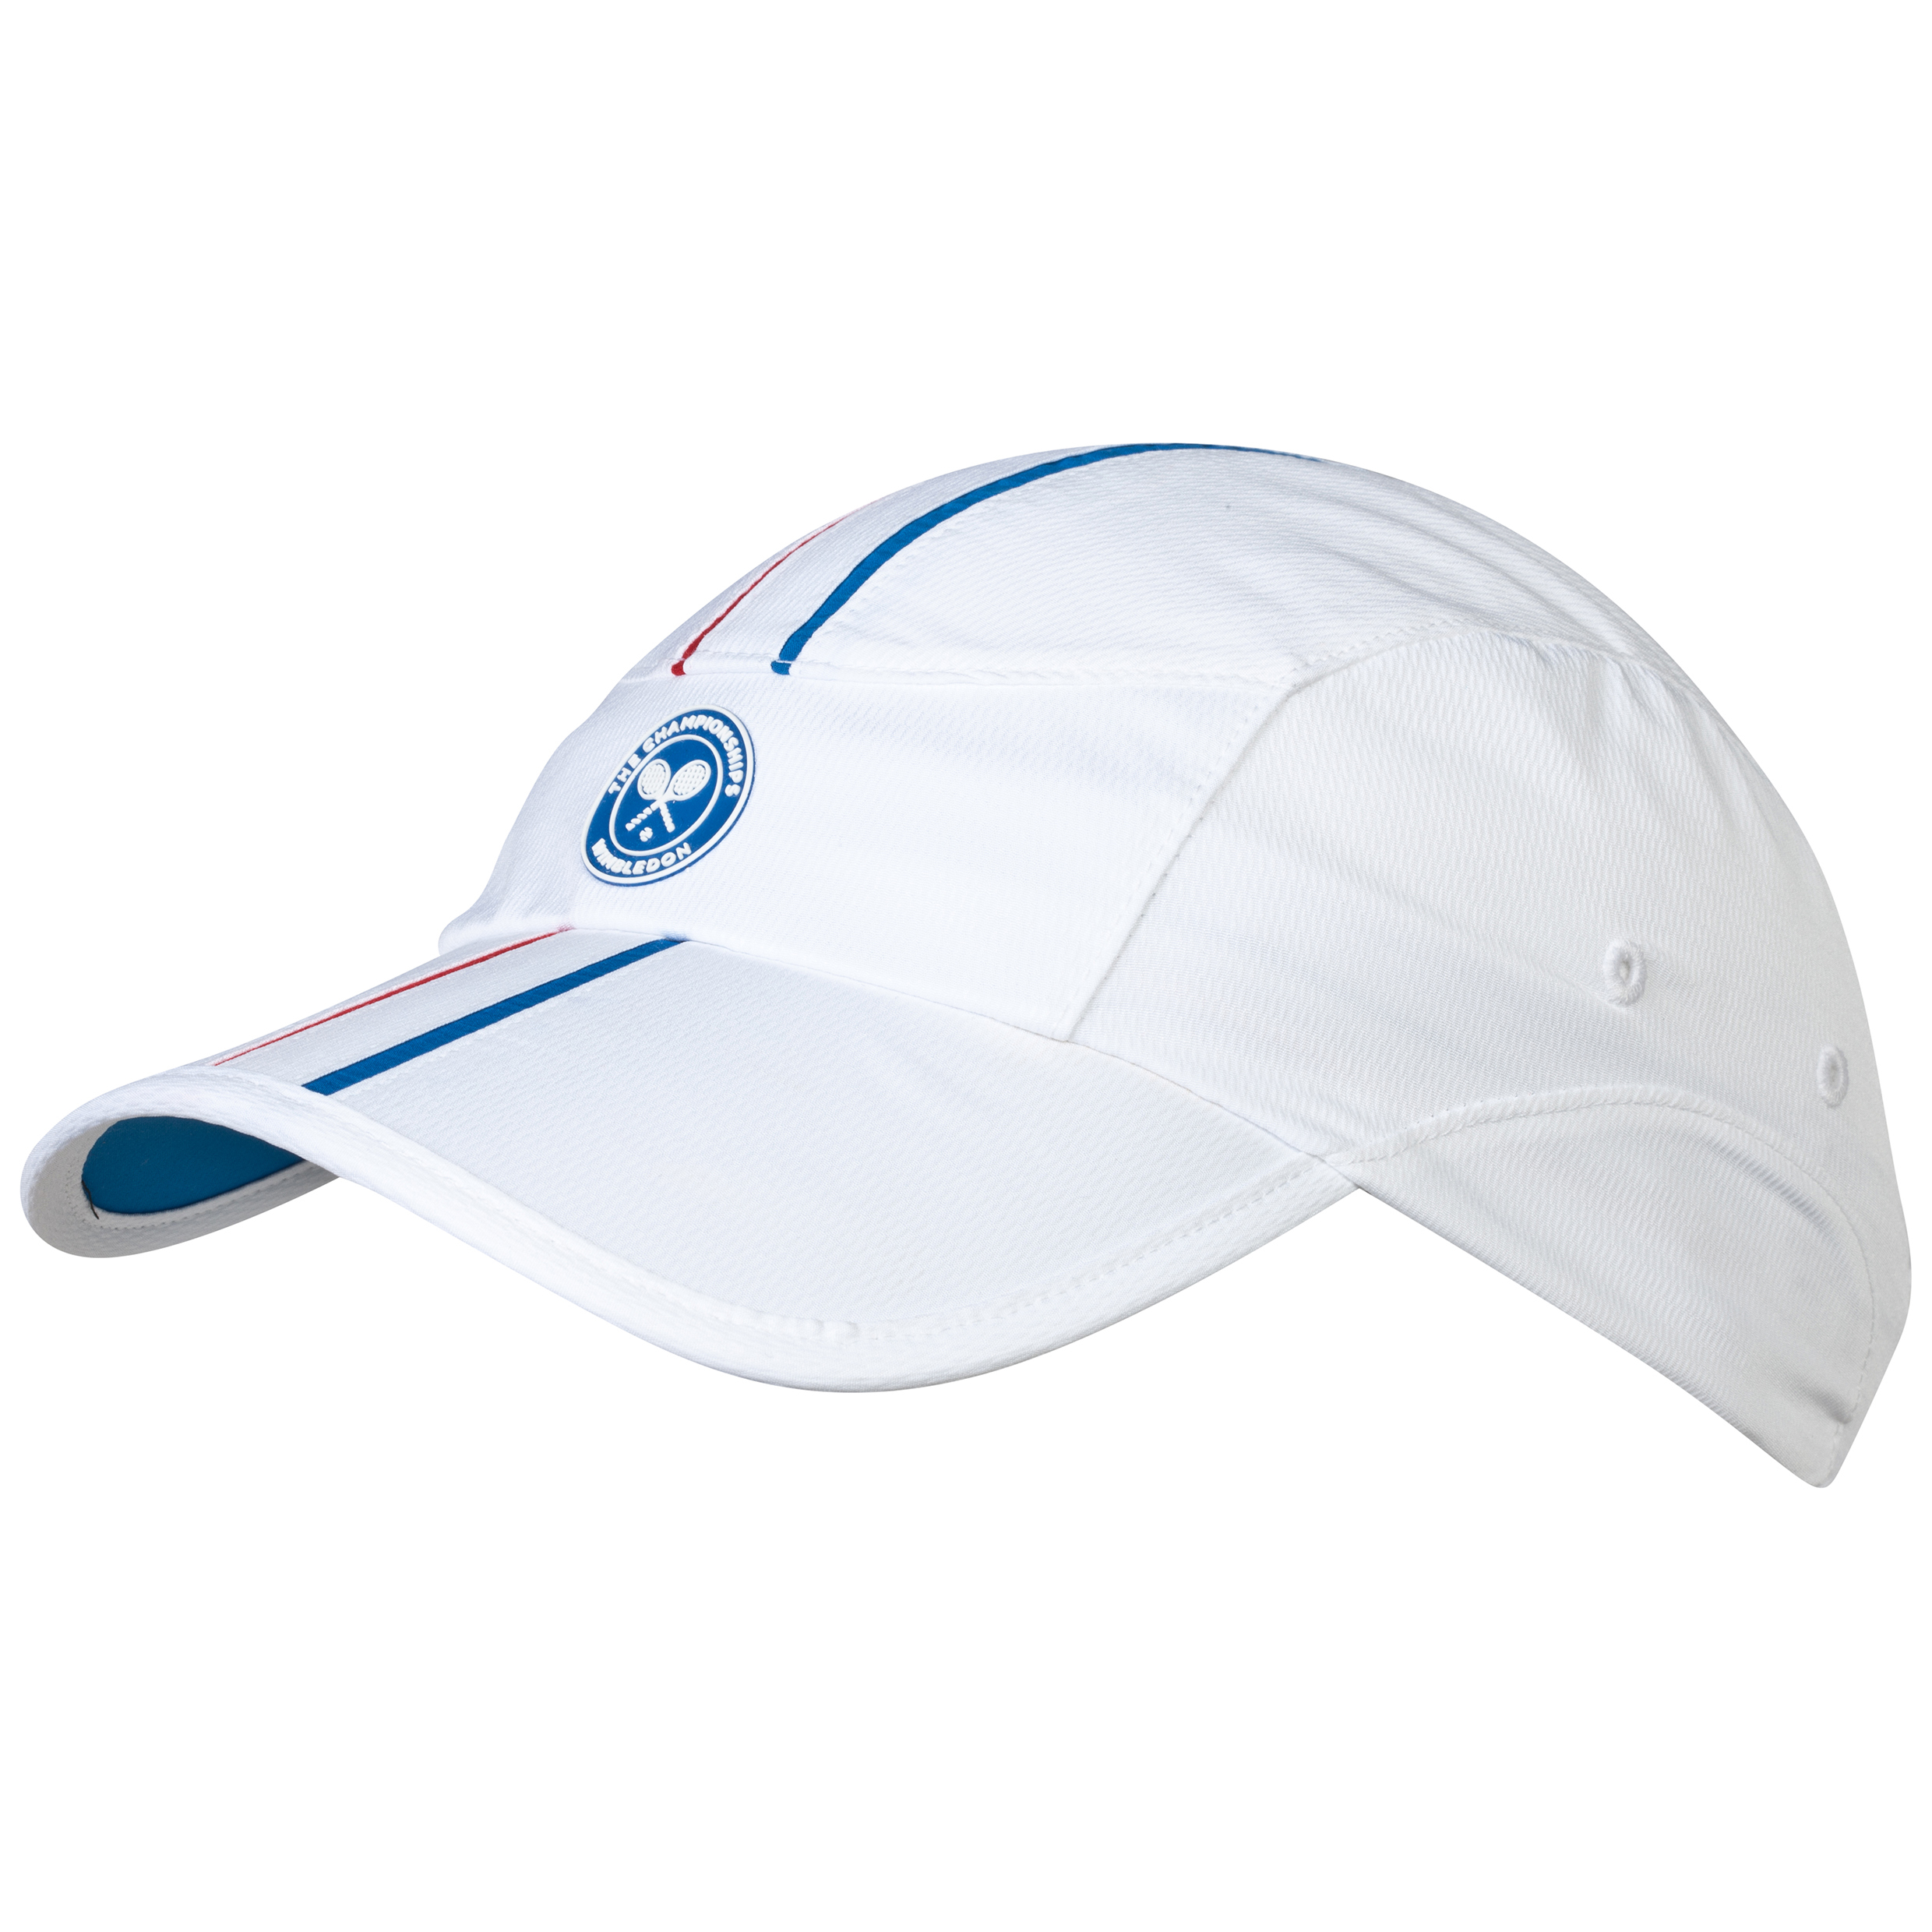 Wimbledon Player Cap - Adults White